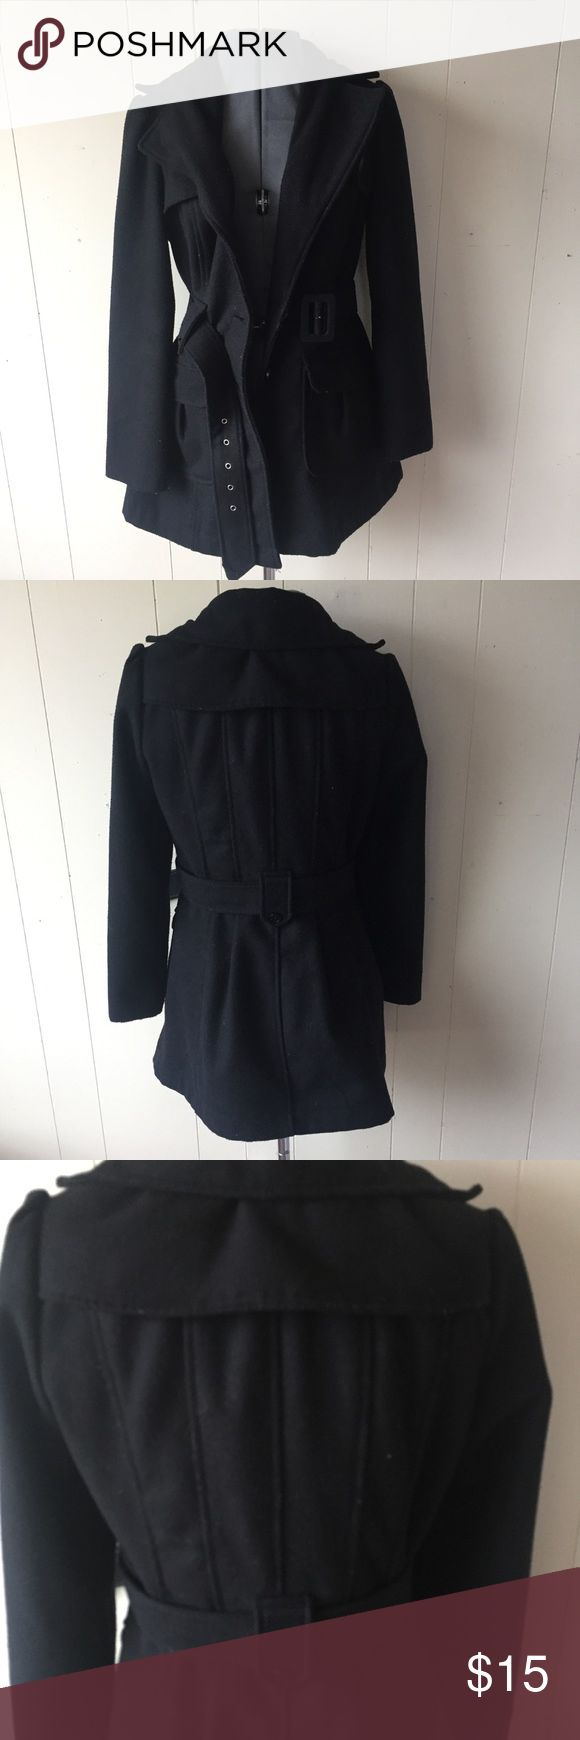 Black Pea Coat Black warm pea coat. Worn, but lots of life left! Size medium. No holes or major flaws. Forever 21 Jackets & Coats Pea Coats